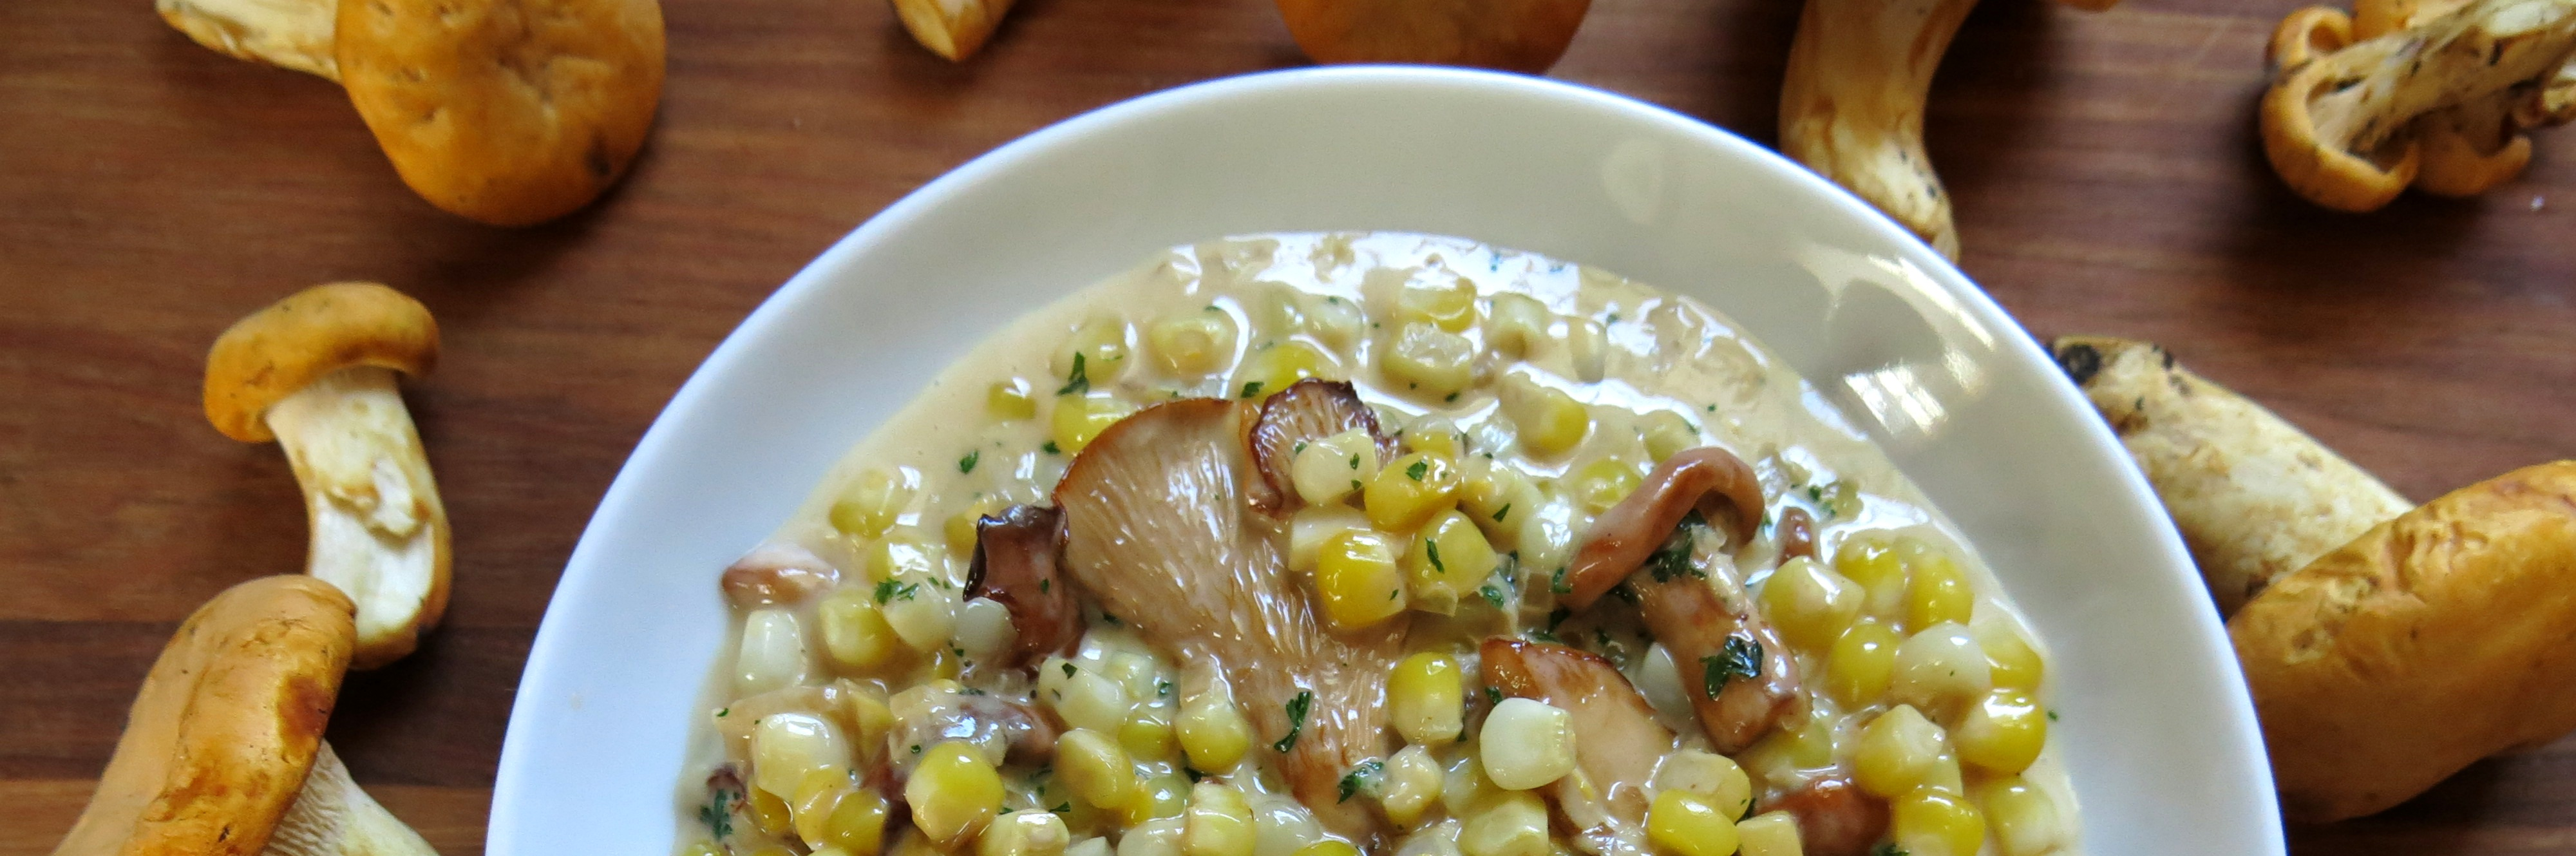 Creamed chanterelles and sweet corn recipe